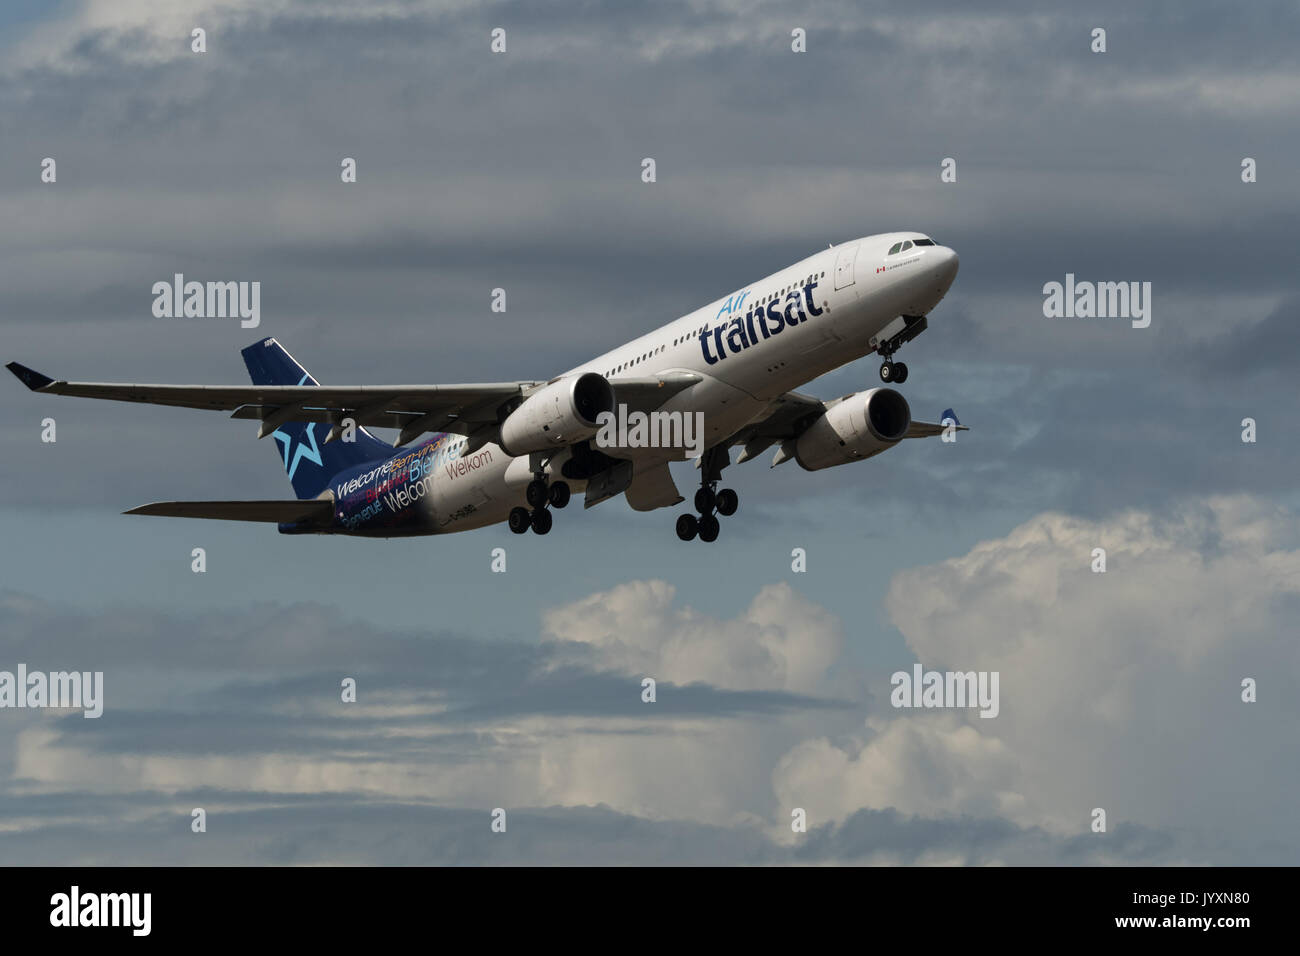 Richmond, British Columbia, Canada. 18th Aug, 2017. An Air Transat Airbus A330 (C-GUBD) wide-body jet airliner takes Stock Photo